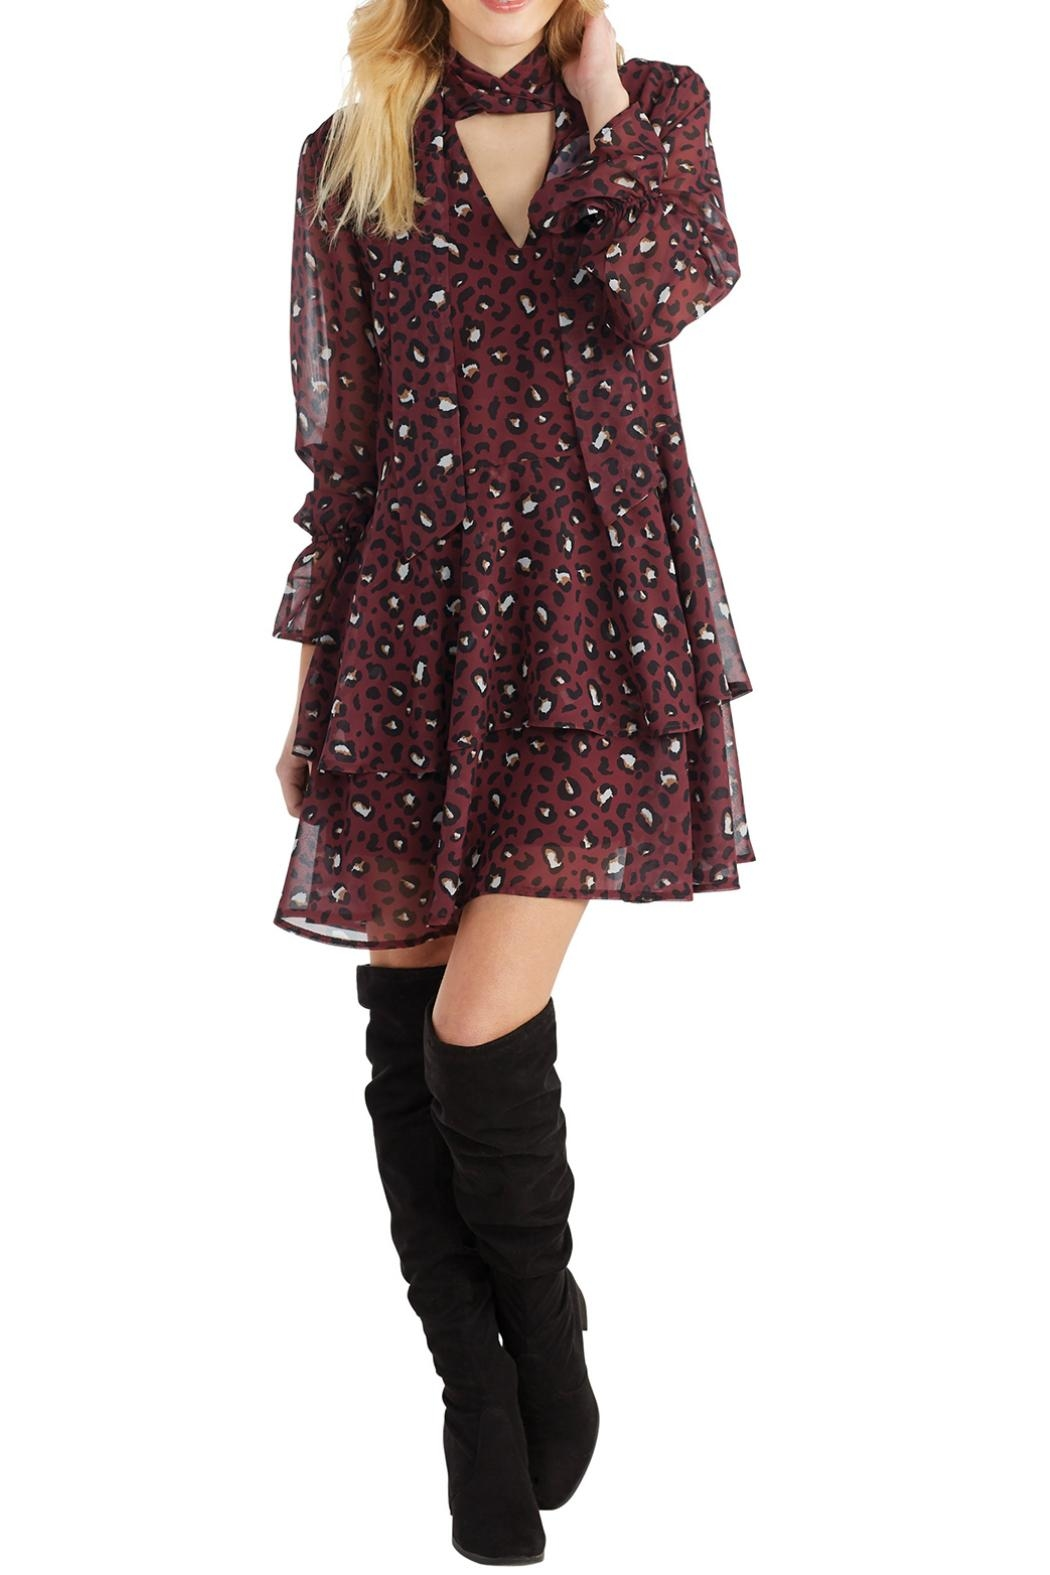 Mud Pie Leopard-Print Flounce Dress - Front Cropped Image